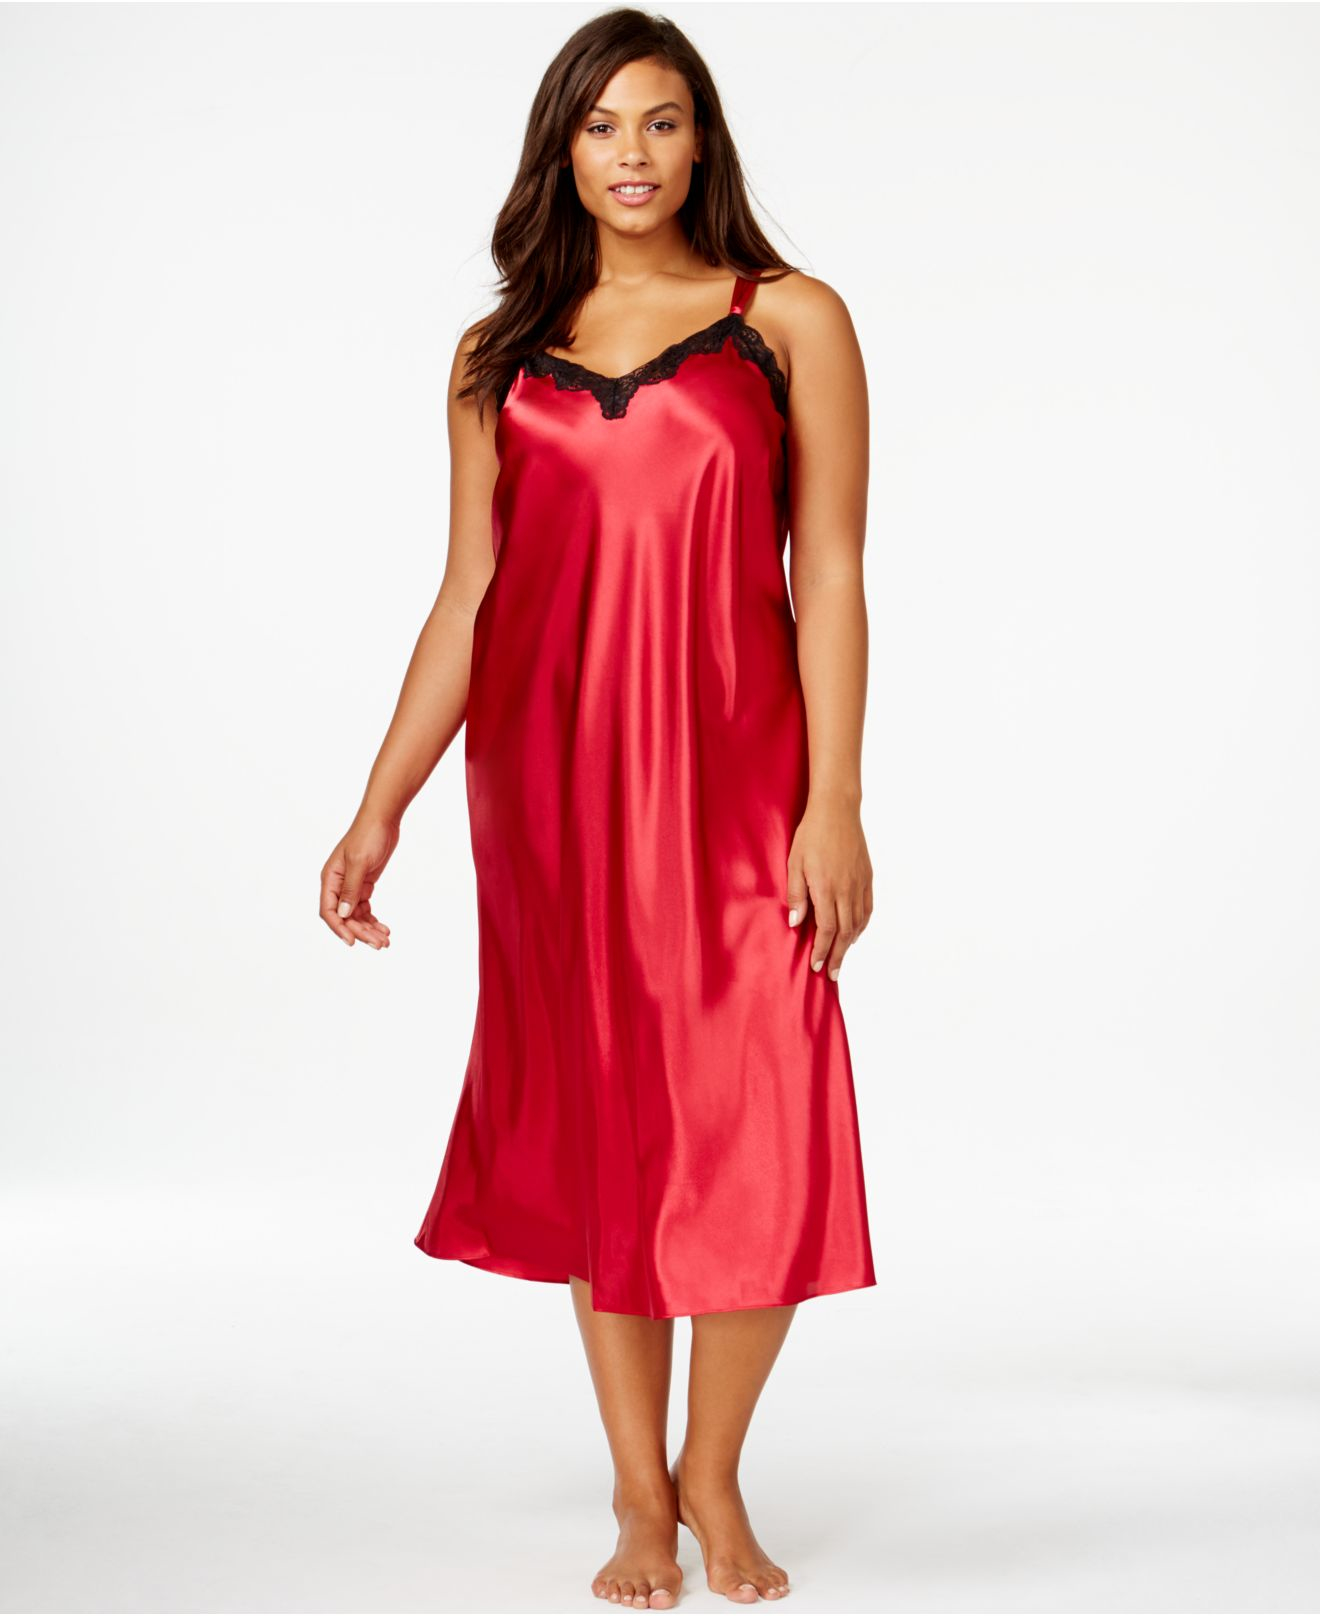 Lyst - Morgan Taylor Plus Size Satin Nightgown in Red